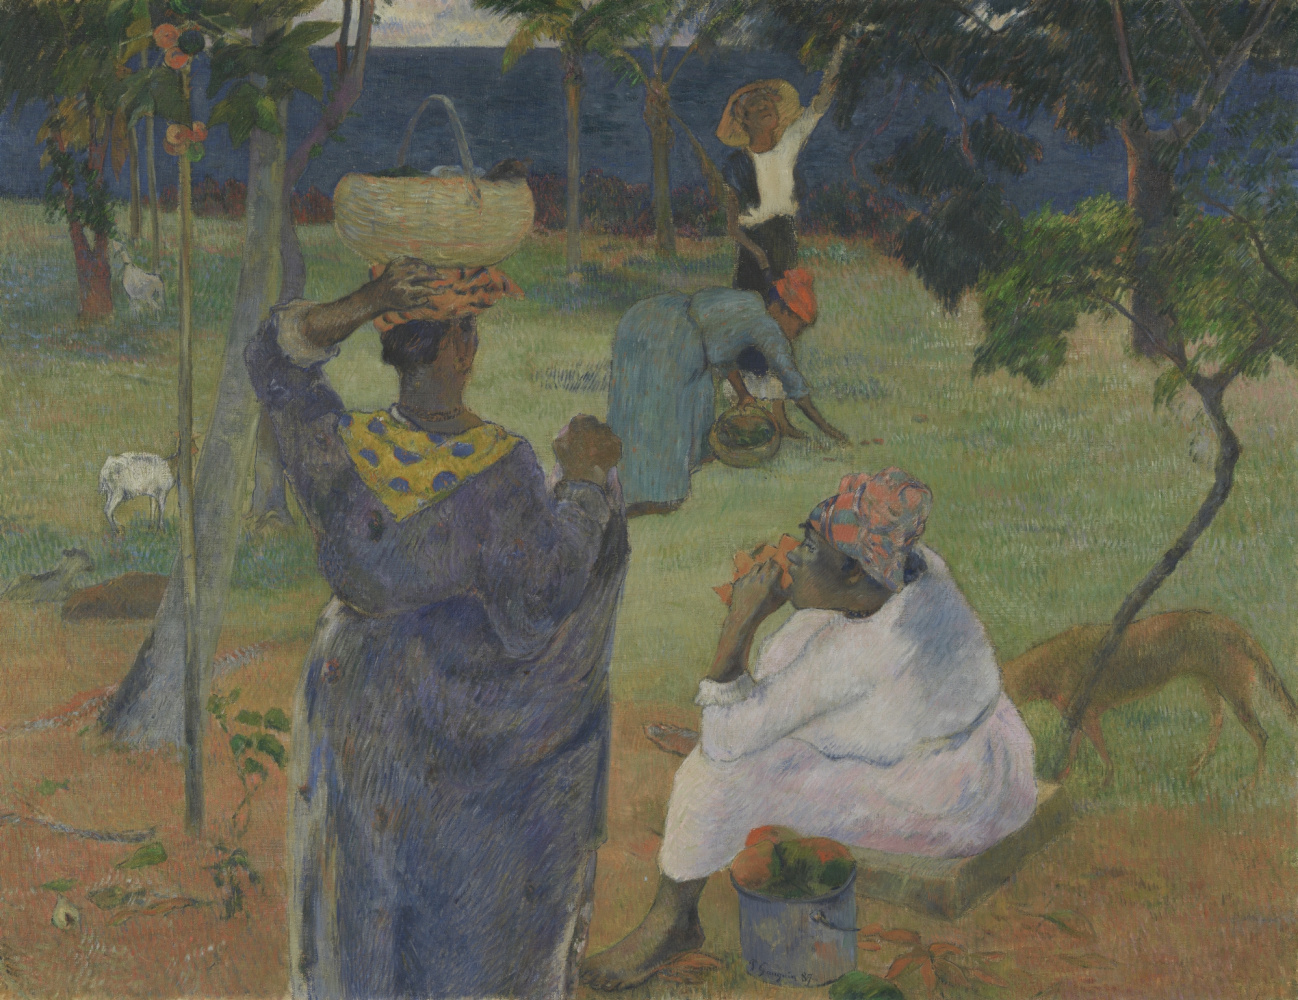 Martinique paintings by Gauguin and Laval in Van Gogh Museum